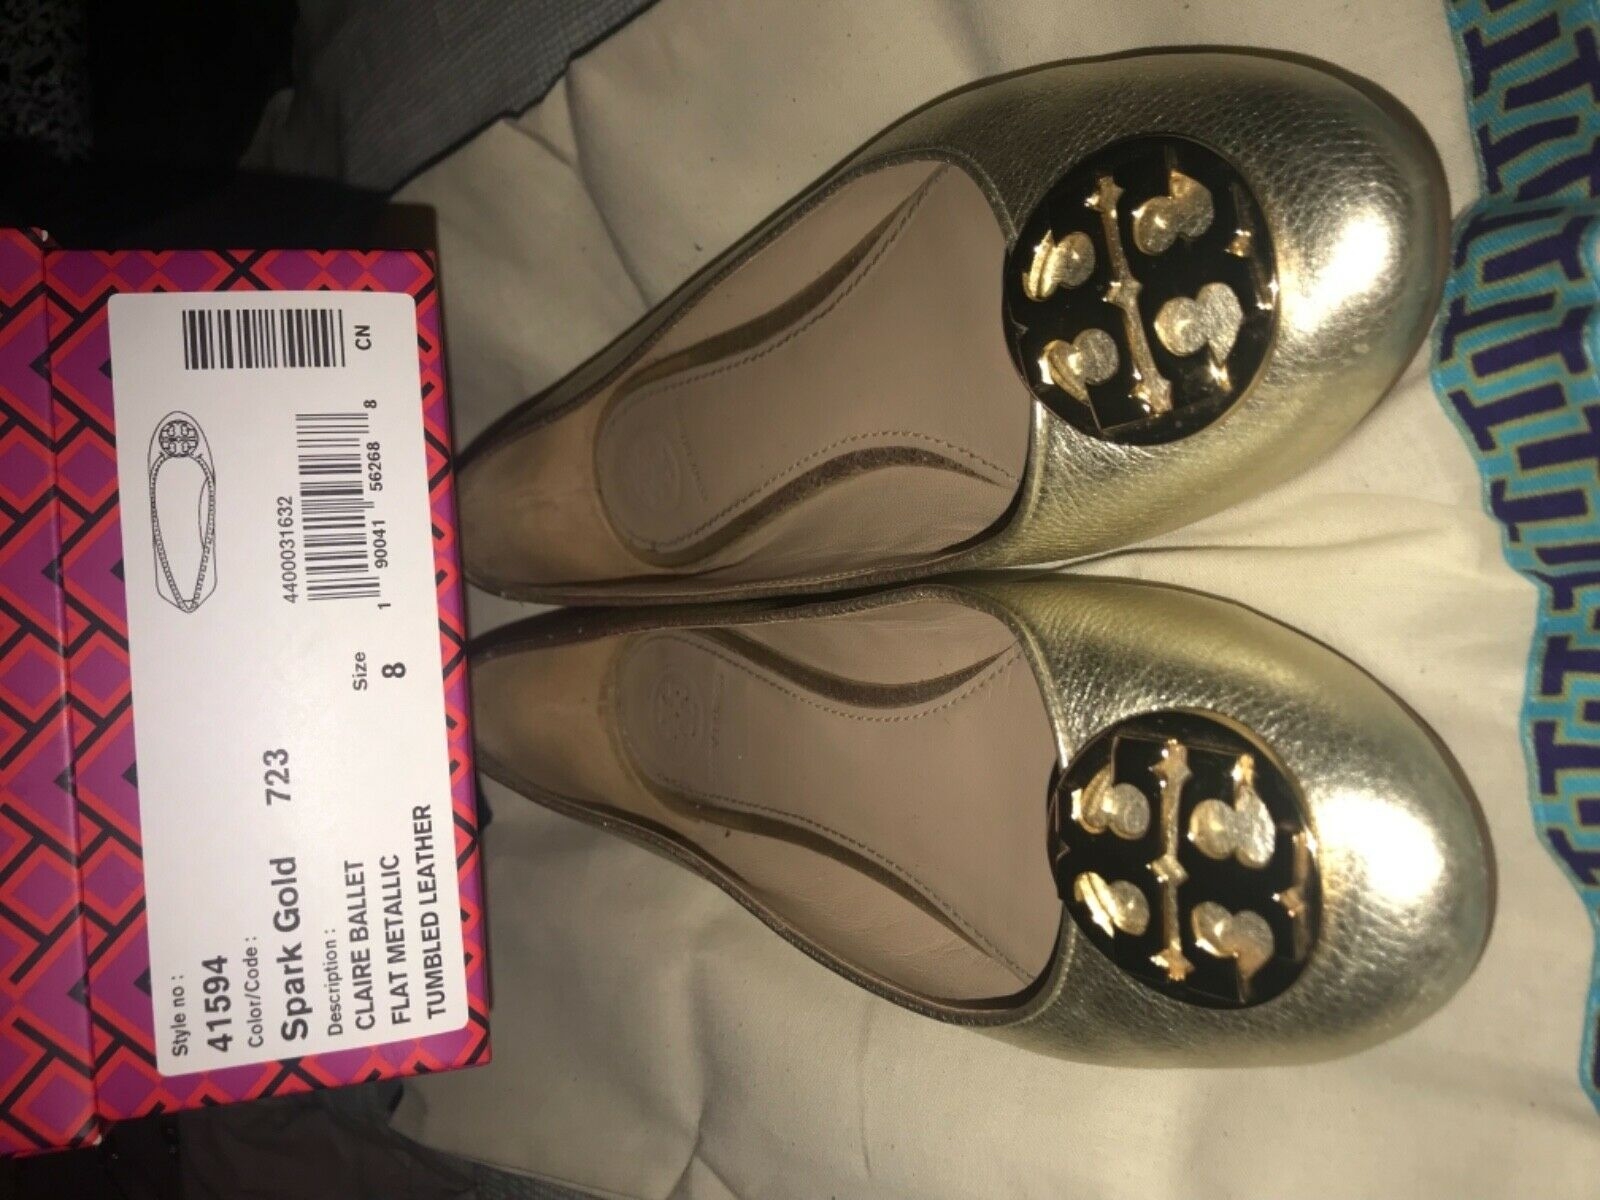 Tory Burch Claire Ballerina Flat - image 5